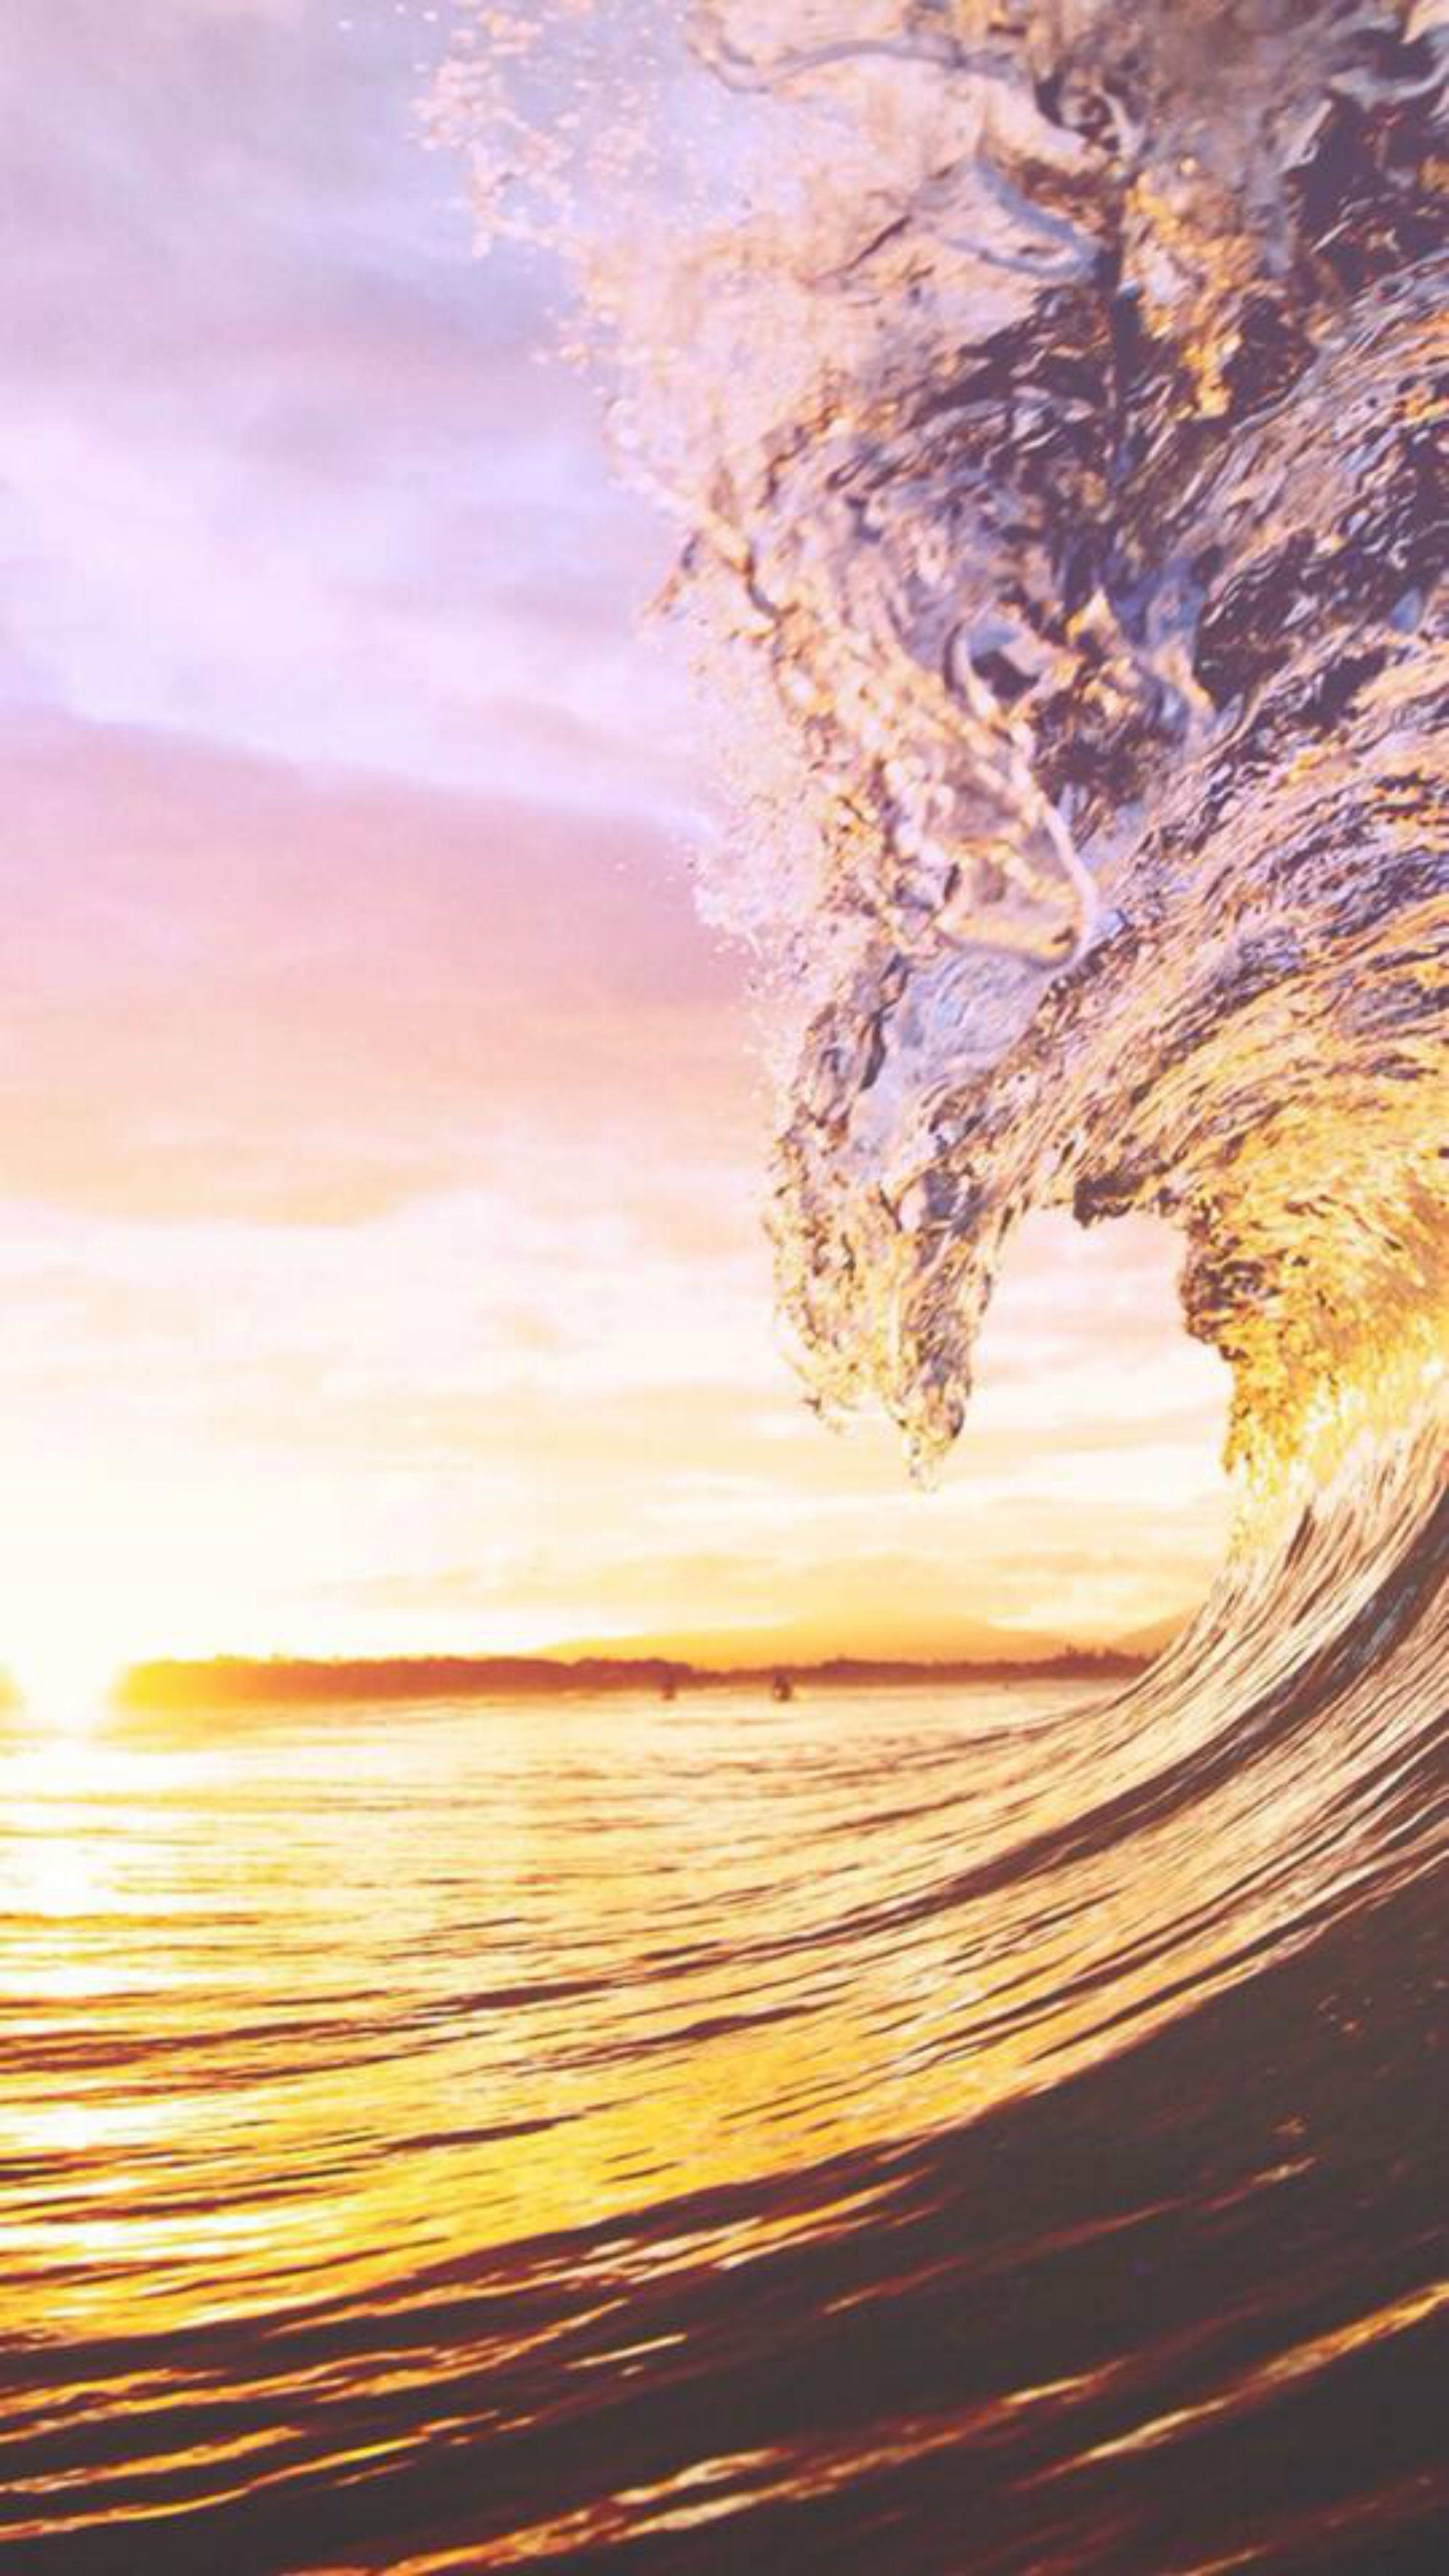 iPhone wallpaper summer waves Fotos, Paisajes, Iphone